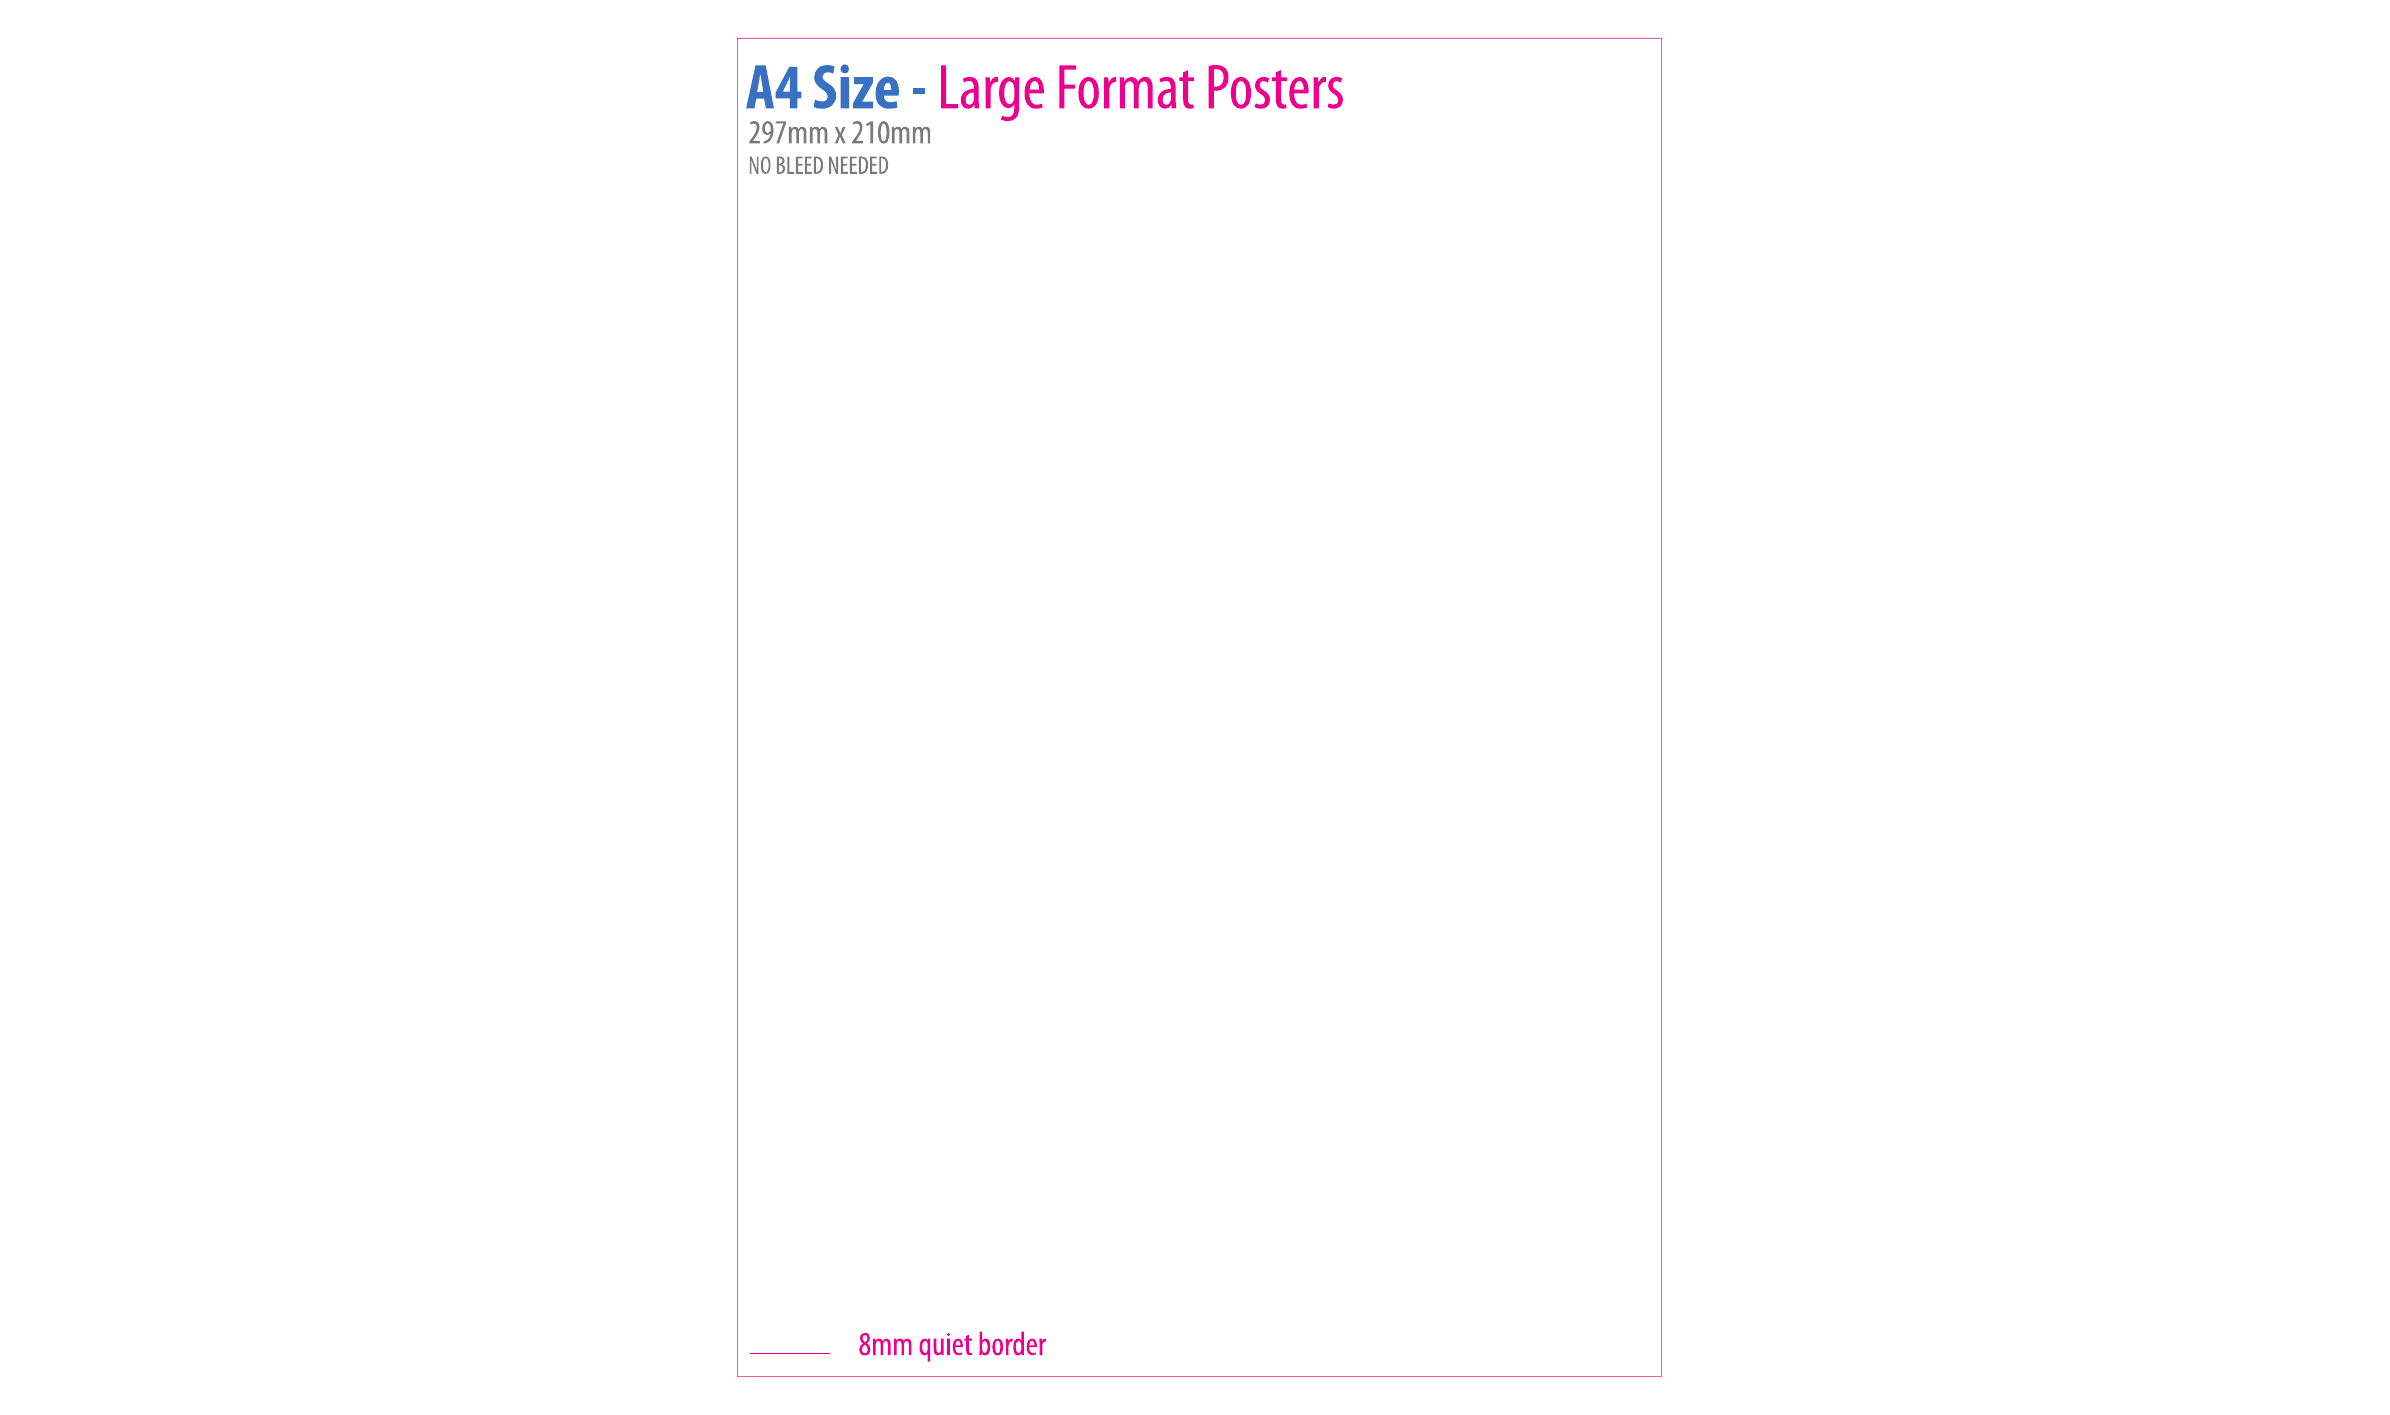 a4 size poster template free download